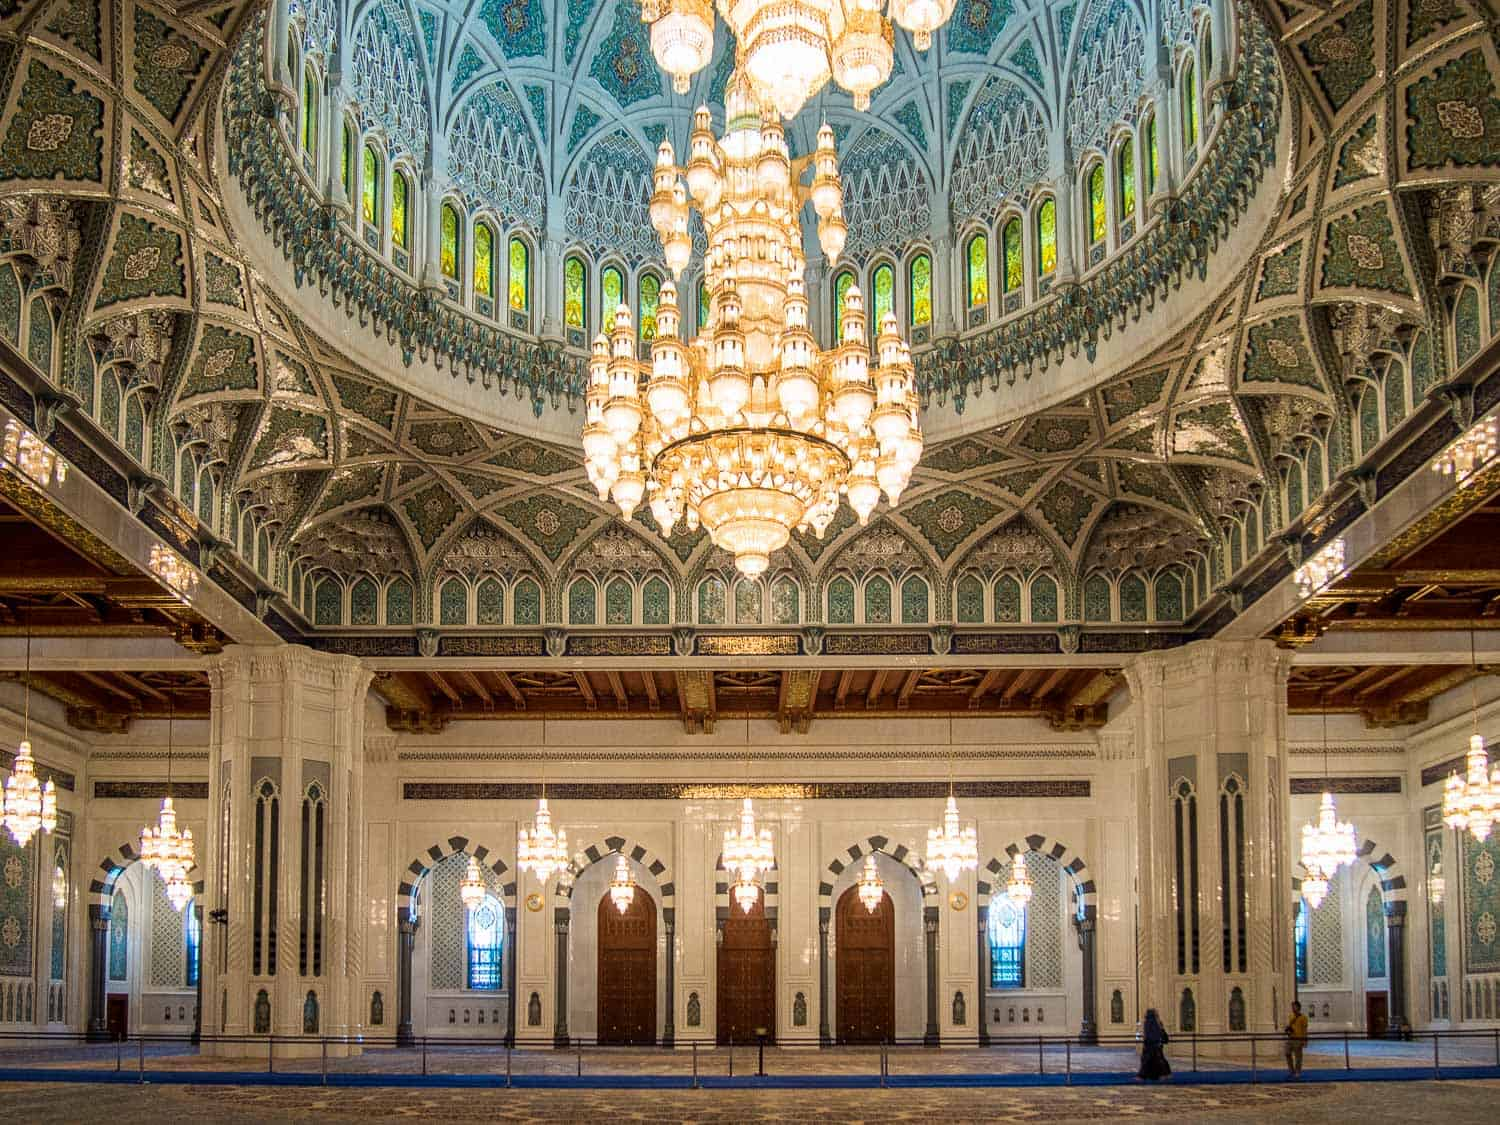 The main prayer hall of the Grand Mosque in Muscat, one of the most beautiful places to visit in Oman